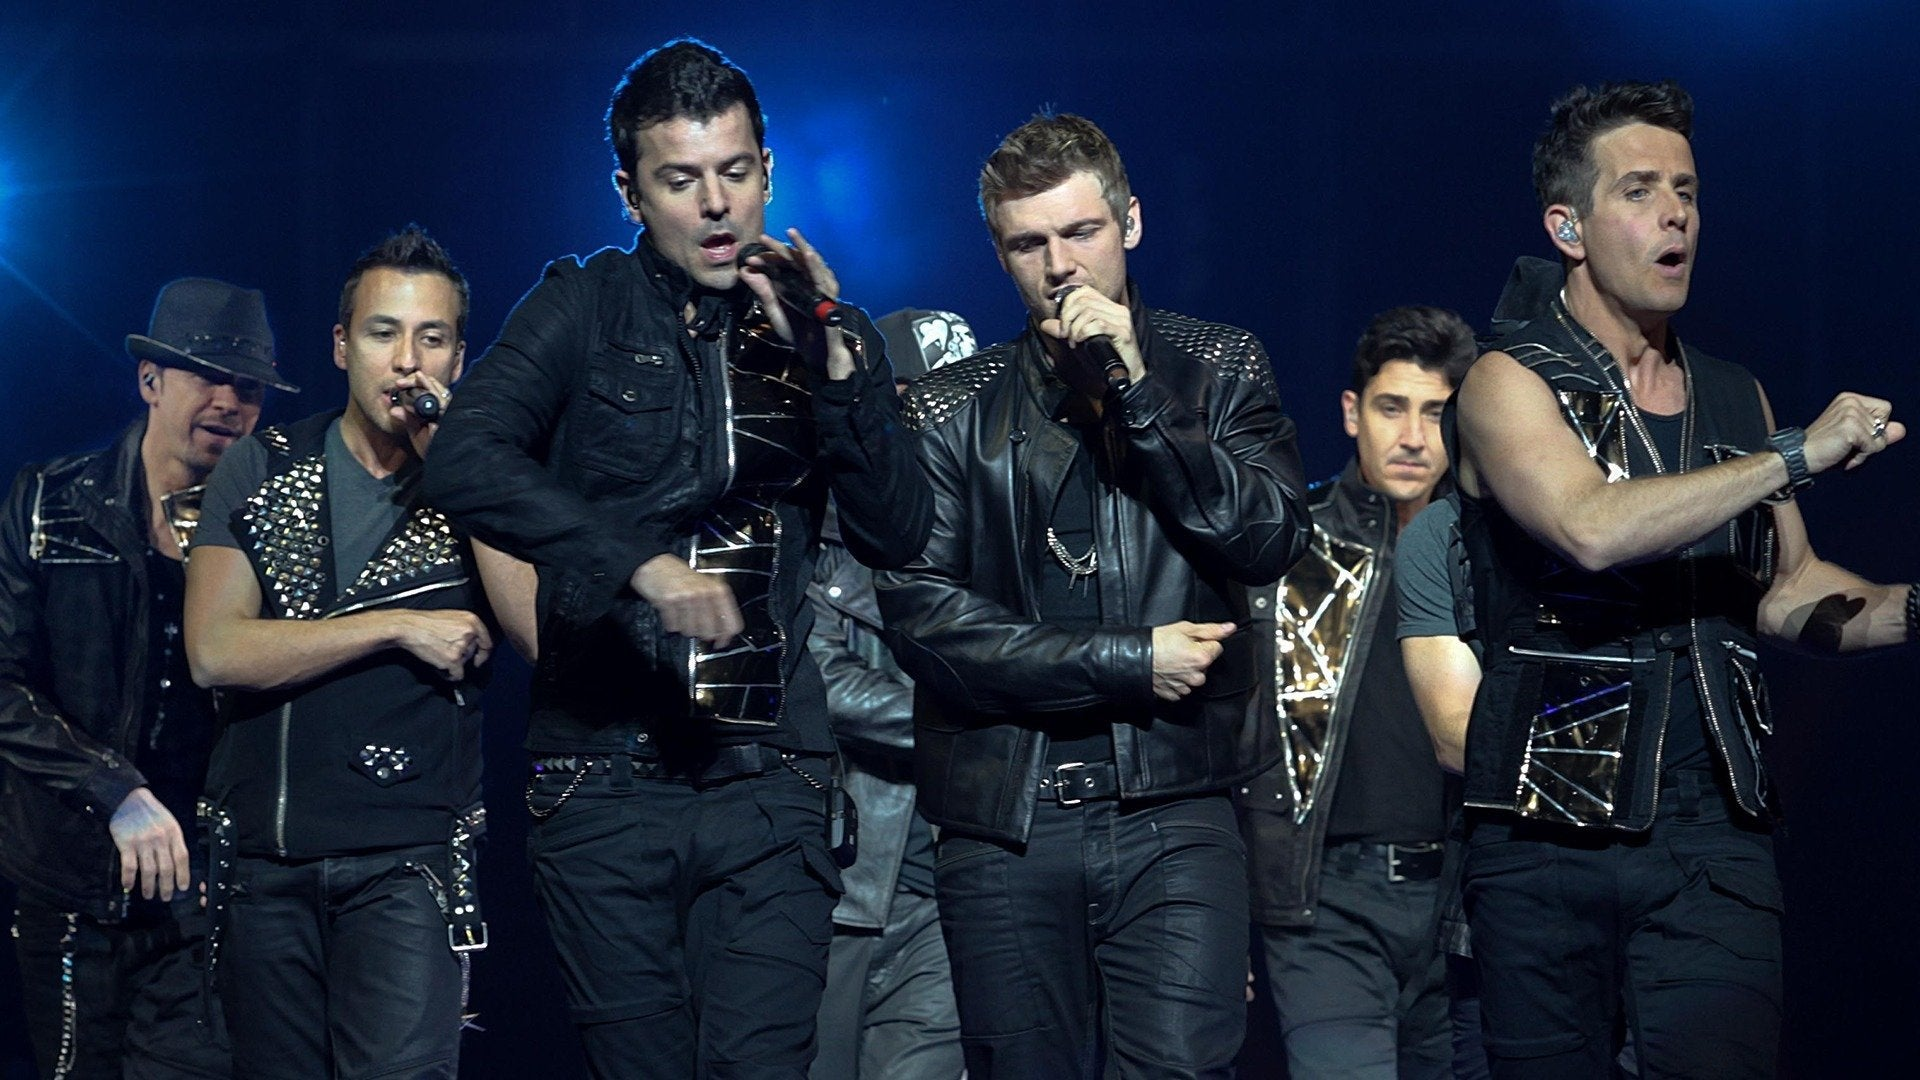 New Kids on the Block & Backstreet Boys: Live From the O2